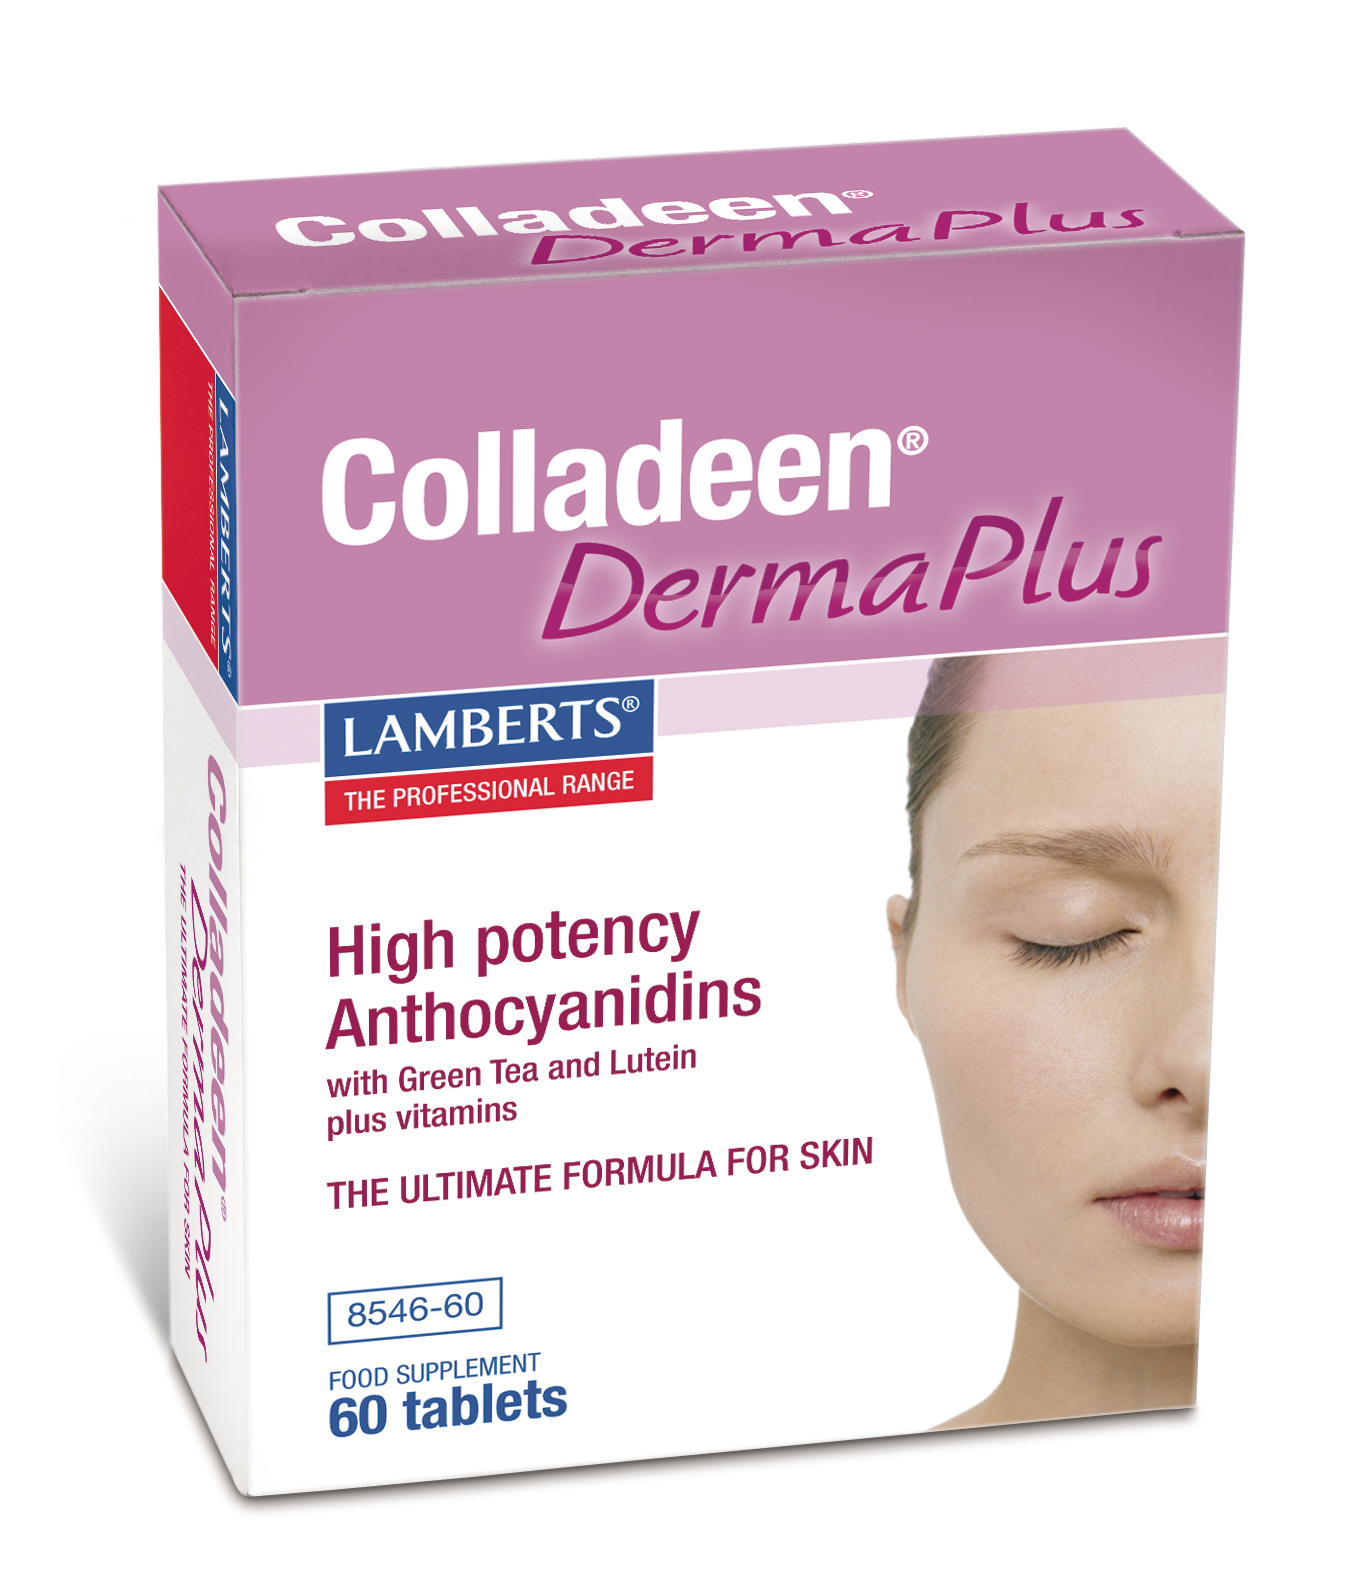 Collageen Derma Plus